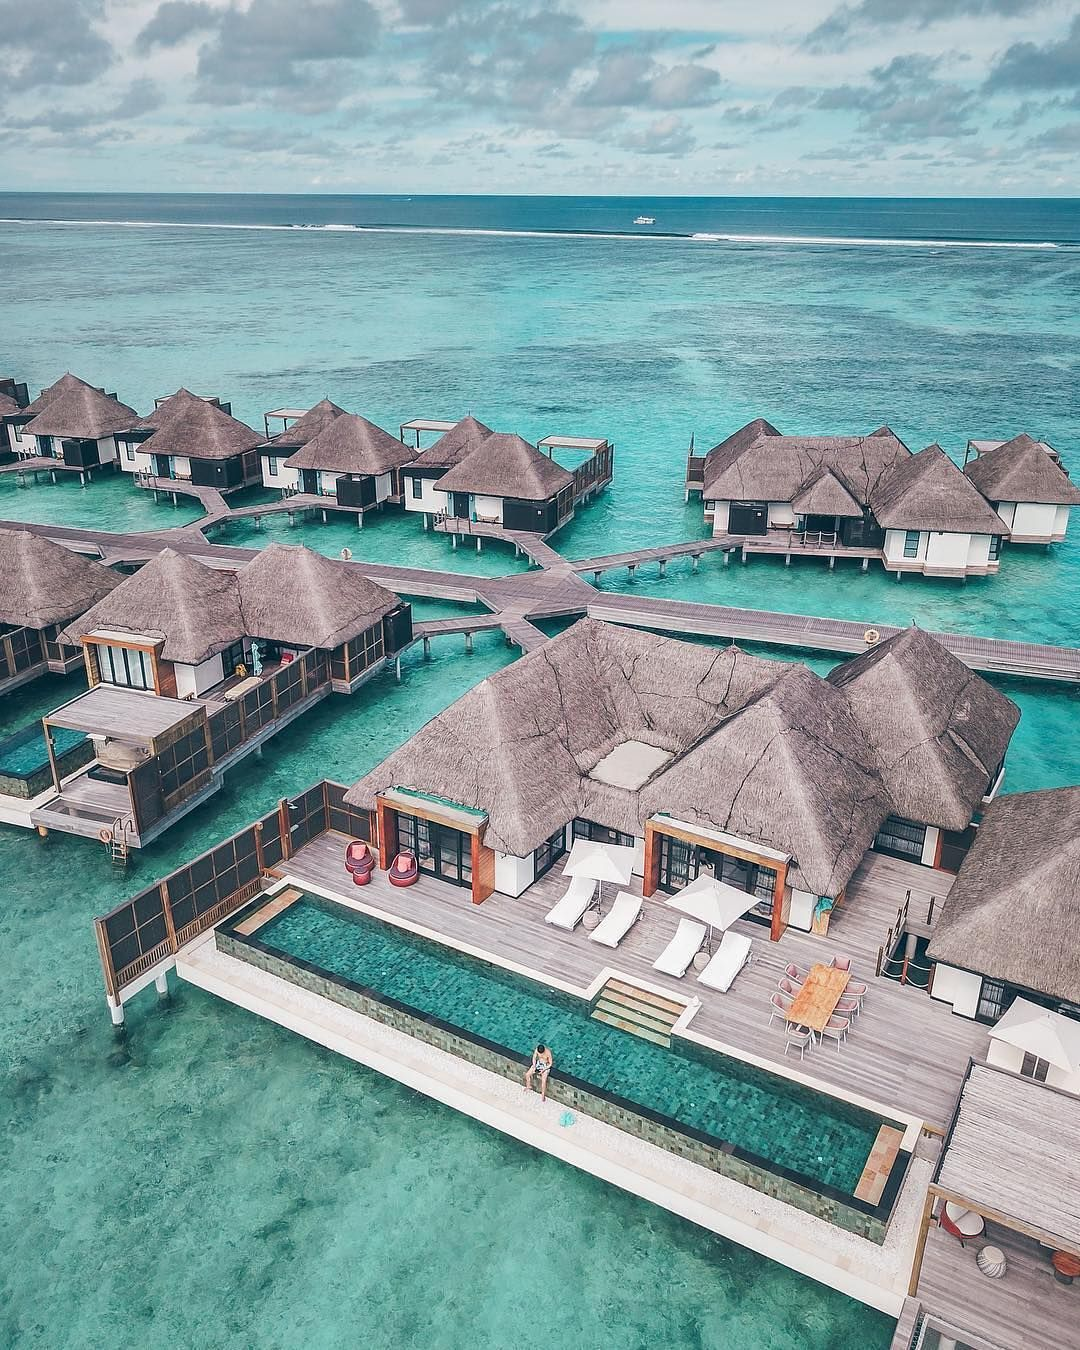 Hotel De Luxe Pas Cher : hotel, Resort, #Hotel, #Luxe, #Voyage, #vacances, Hotel, Amérique, Europe, Hote…, Dream, Hotels,, Luxury, Travel,, Lifestyle, Travel